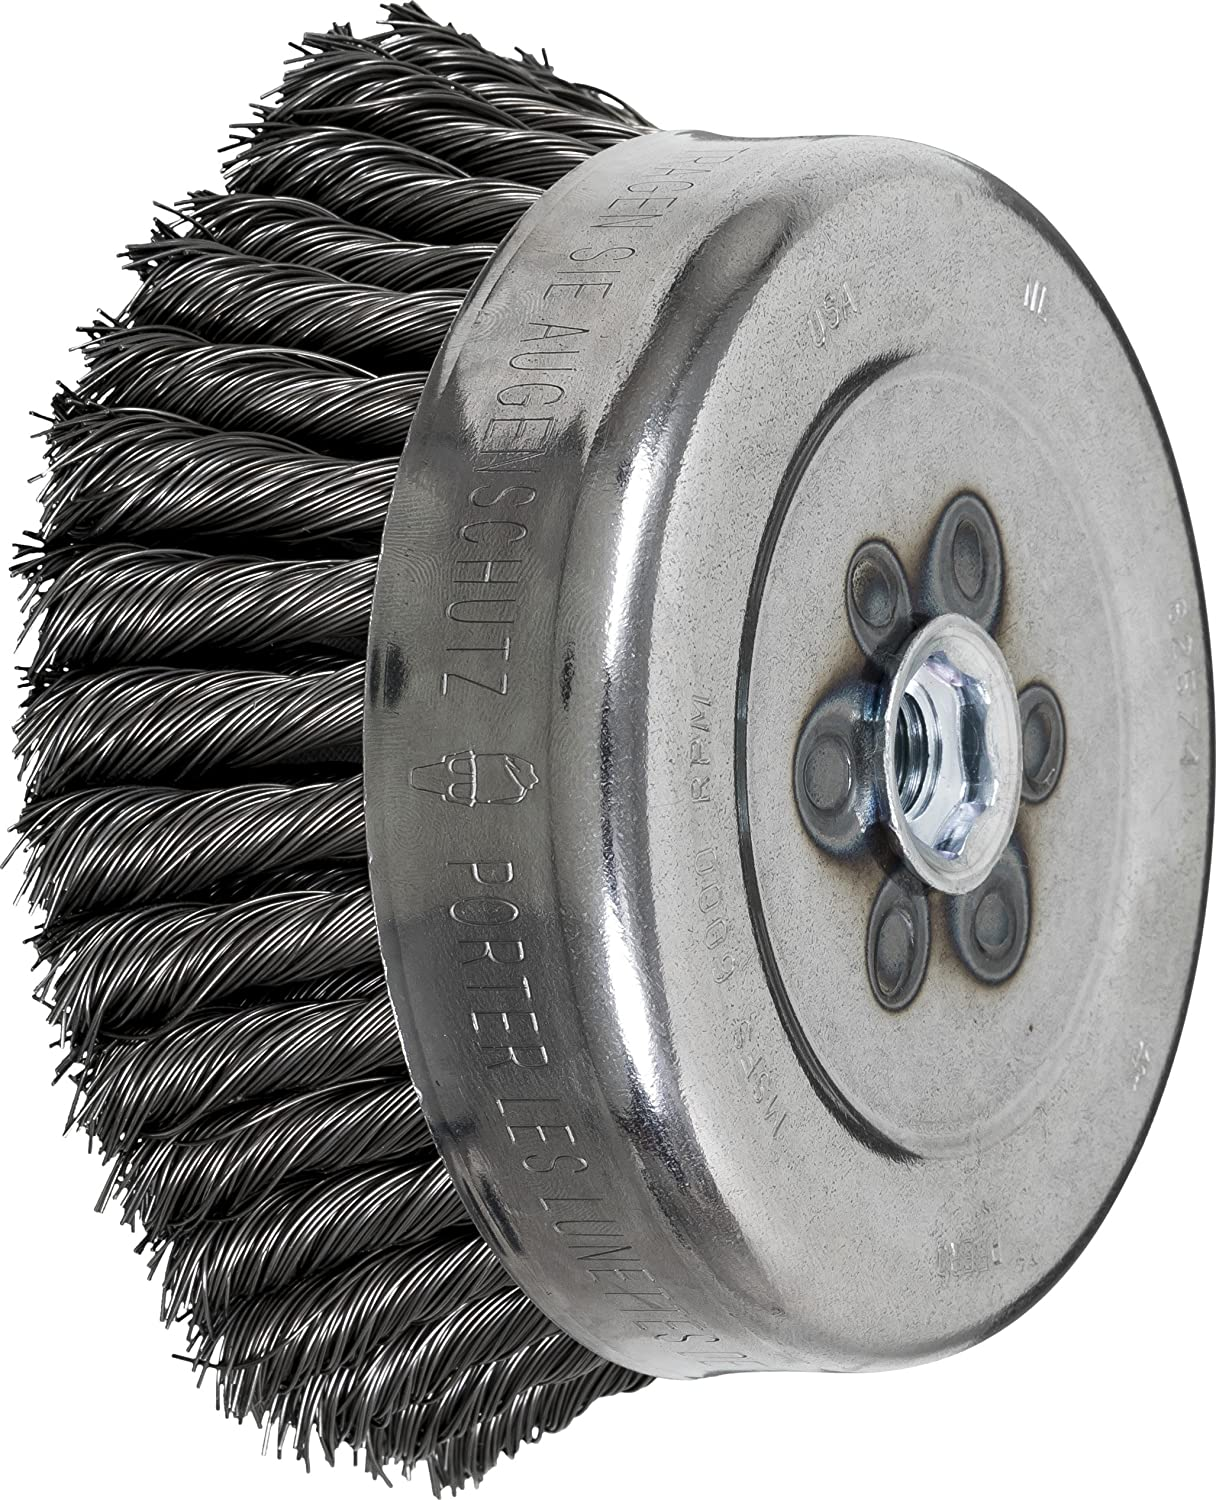 1-1//2 Trim Length 6 Diameter 0.023 Wire Size 5//8-11 Internal Thread Carbon Steel Wire PFERD 82574 Full Cable Twist Knot Cup Brush 6000 RPM